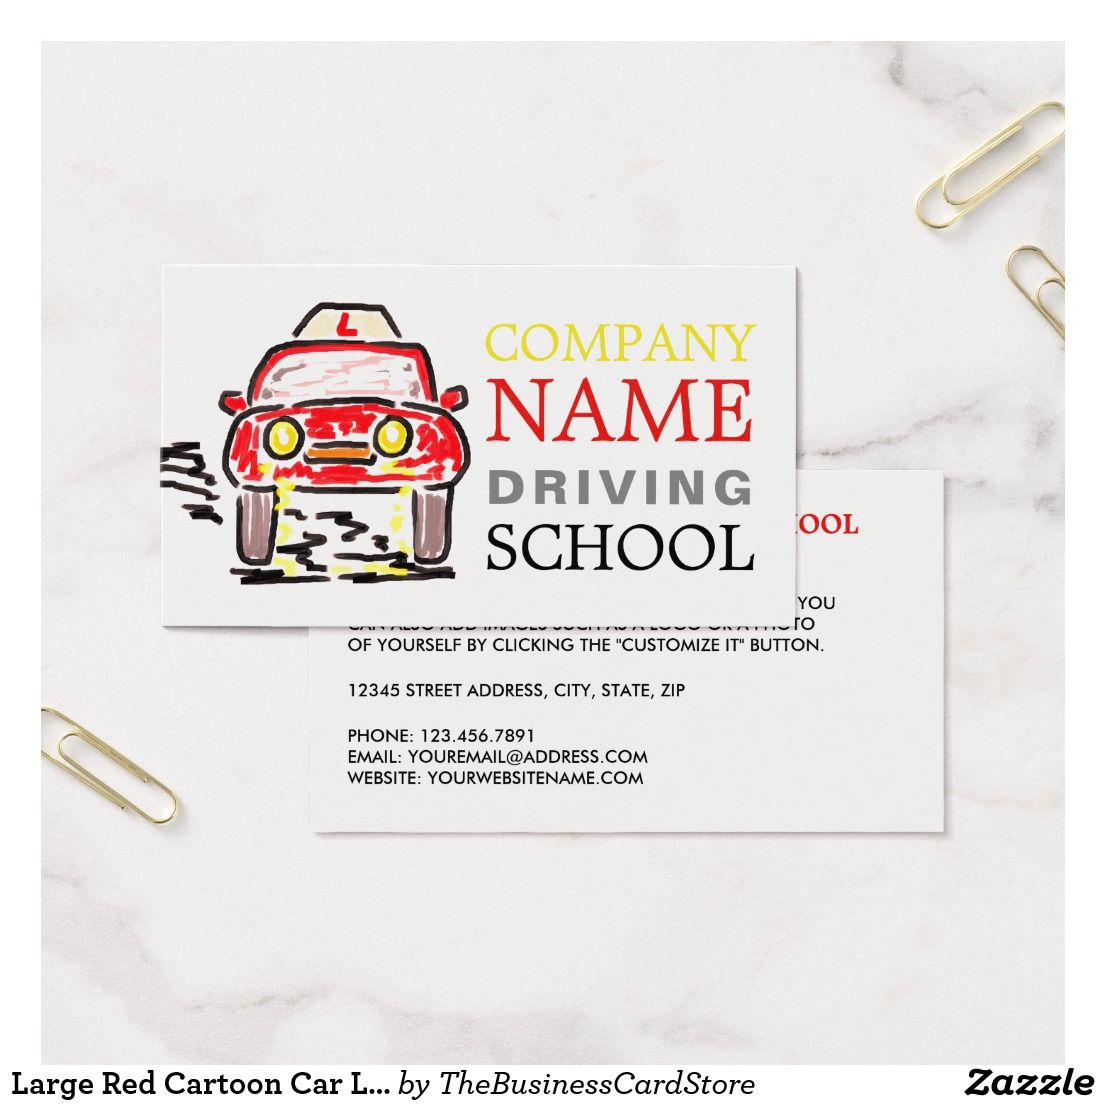 Large Red Cartoon Car Logo, Driving Instructor Business Card ...